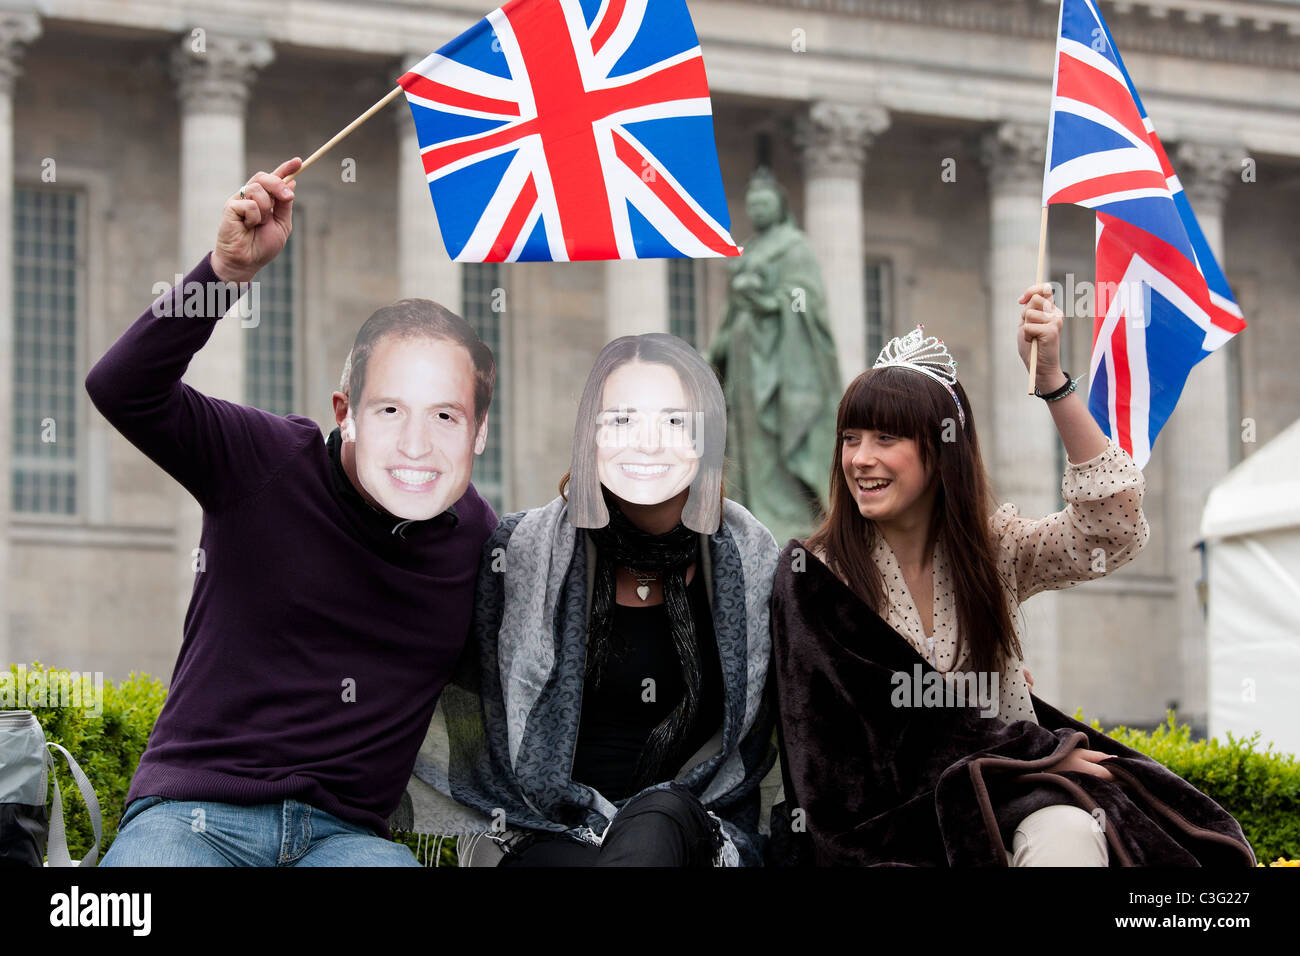 The Royal Wedding celebration of Prince William to Kate Middleton being watched by crowds in Victoria Square, Birmingham. Stock Photo